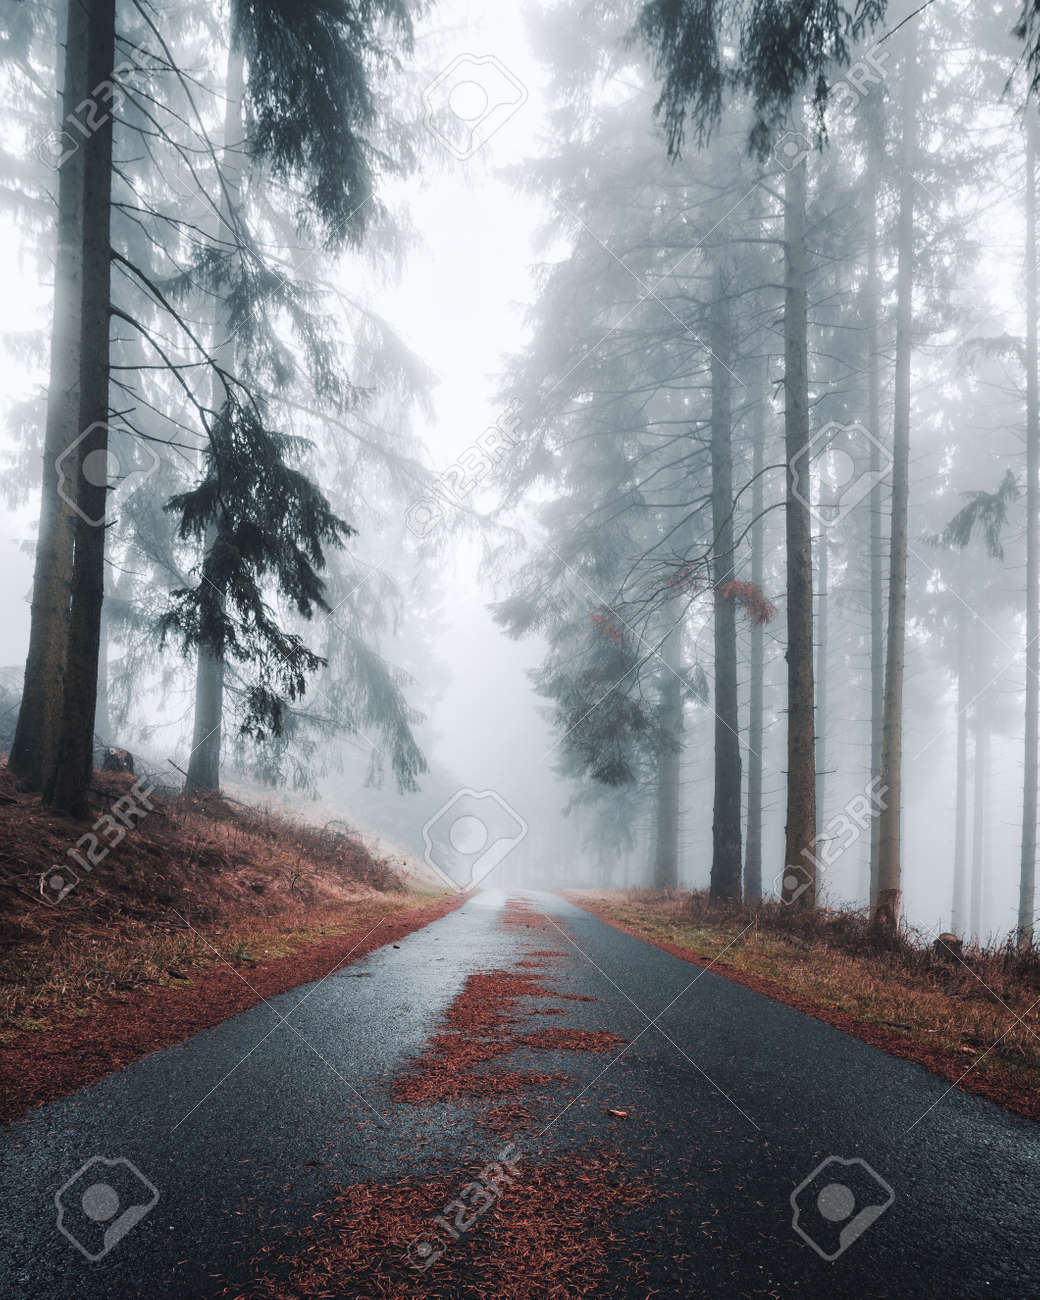 Mystical Road With Fir Needles In A Foggy And Dark Forest Creepy